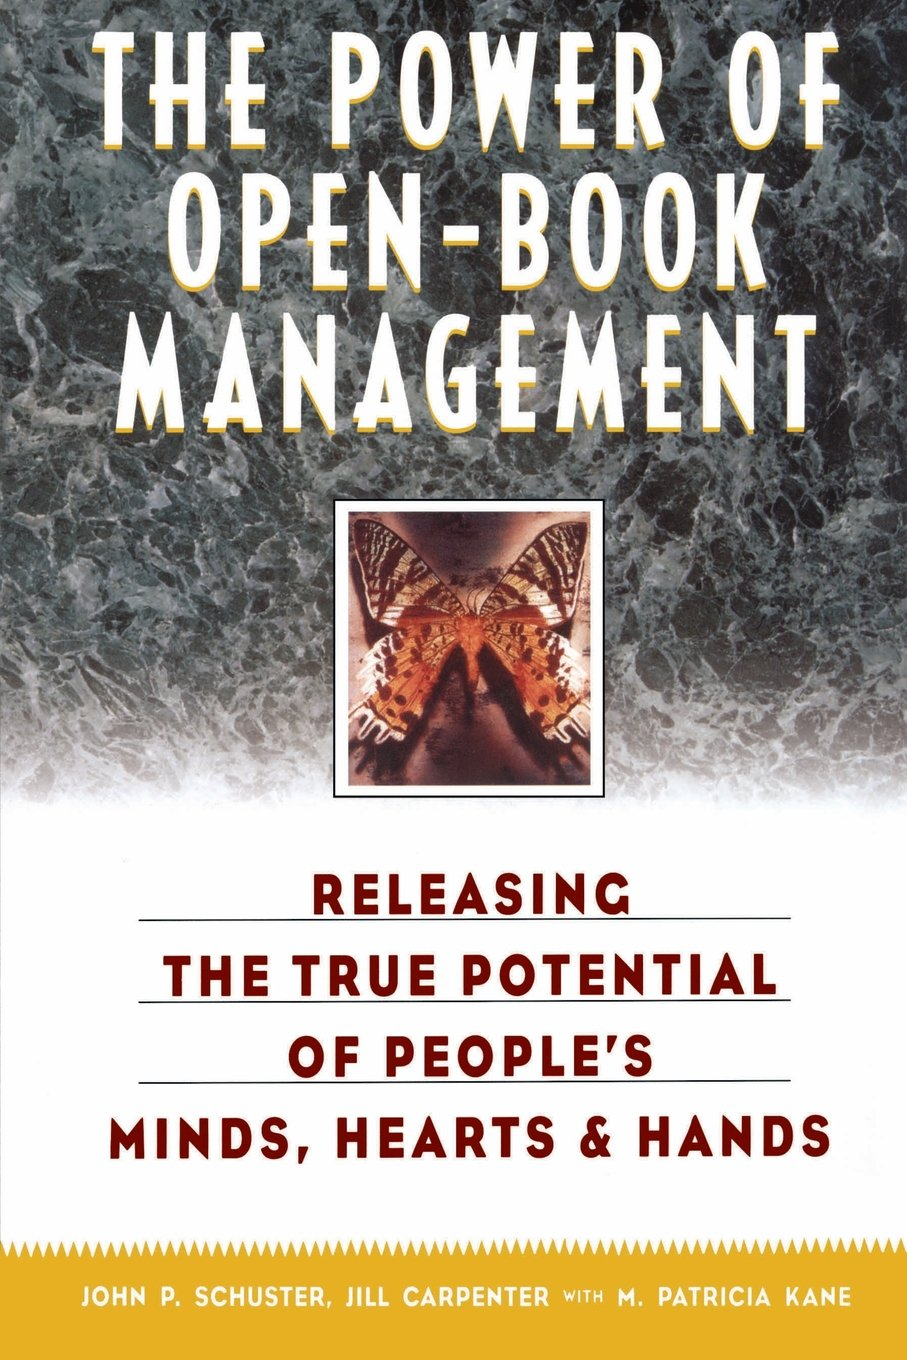 the power of open book management releasing the true potential of